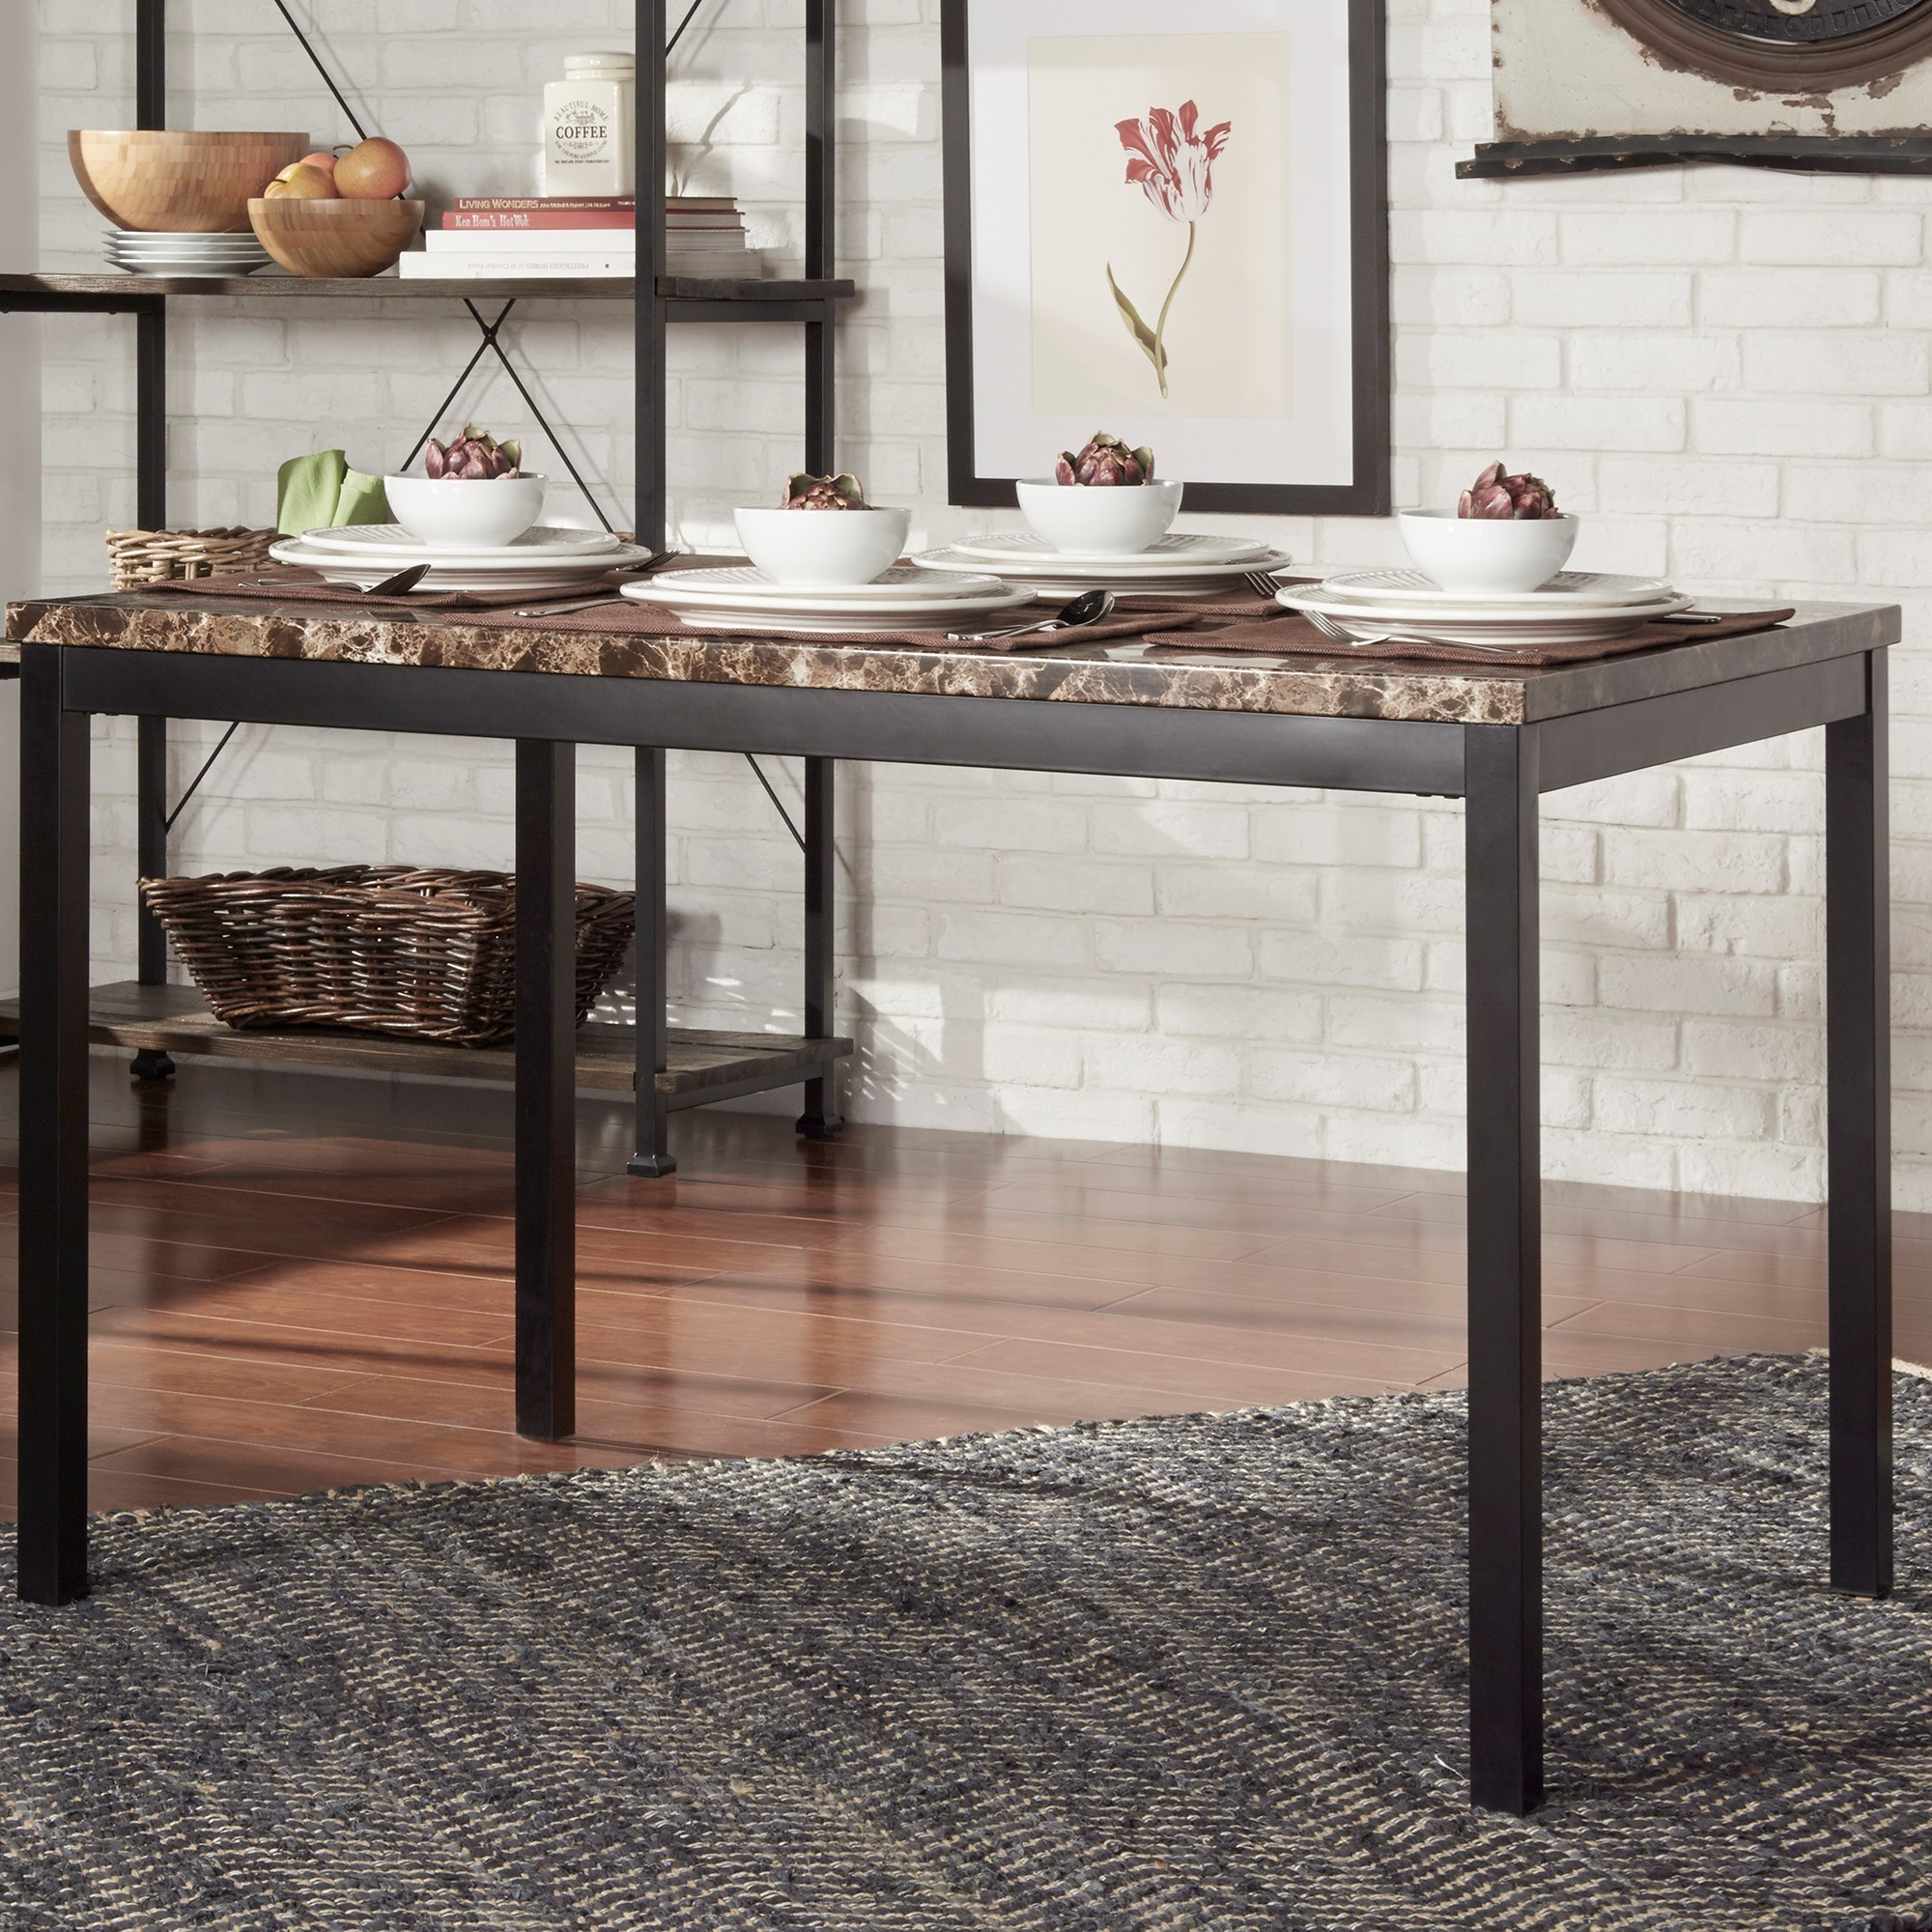 Elegance Tempe 2601-48 Casual Kitchen Table With Faux